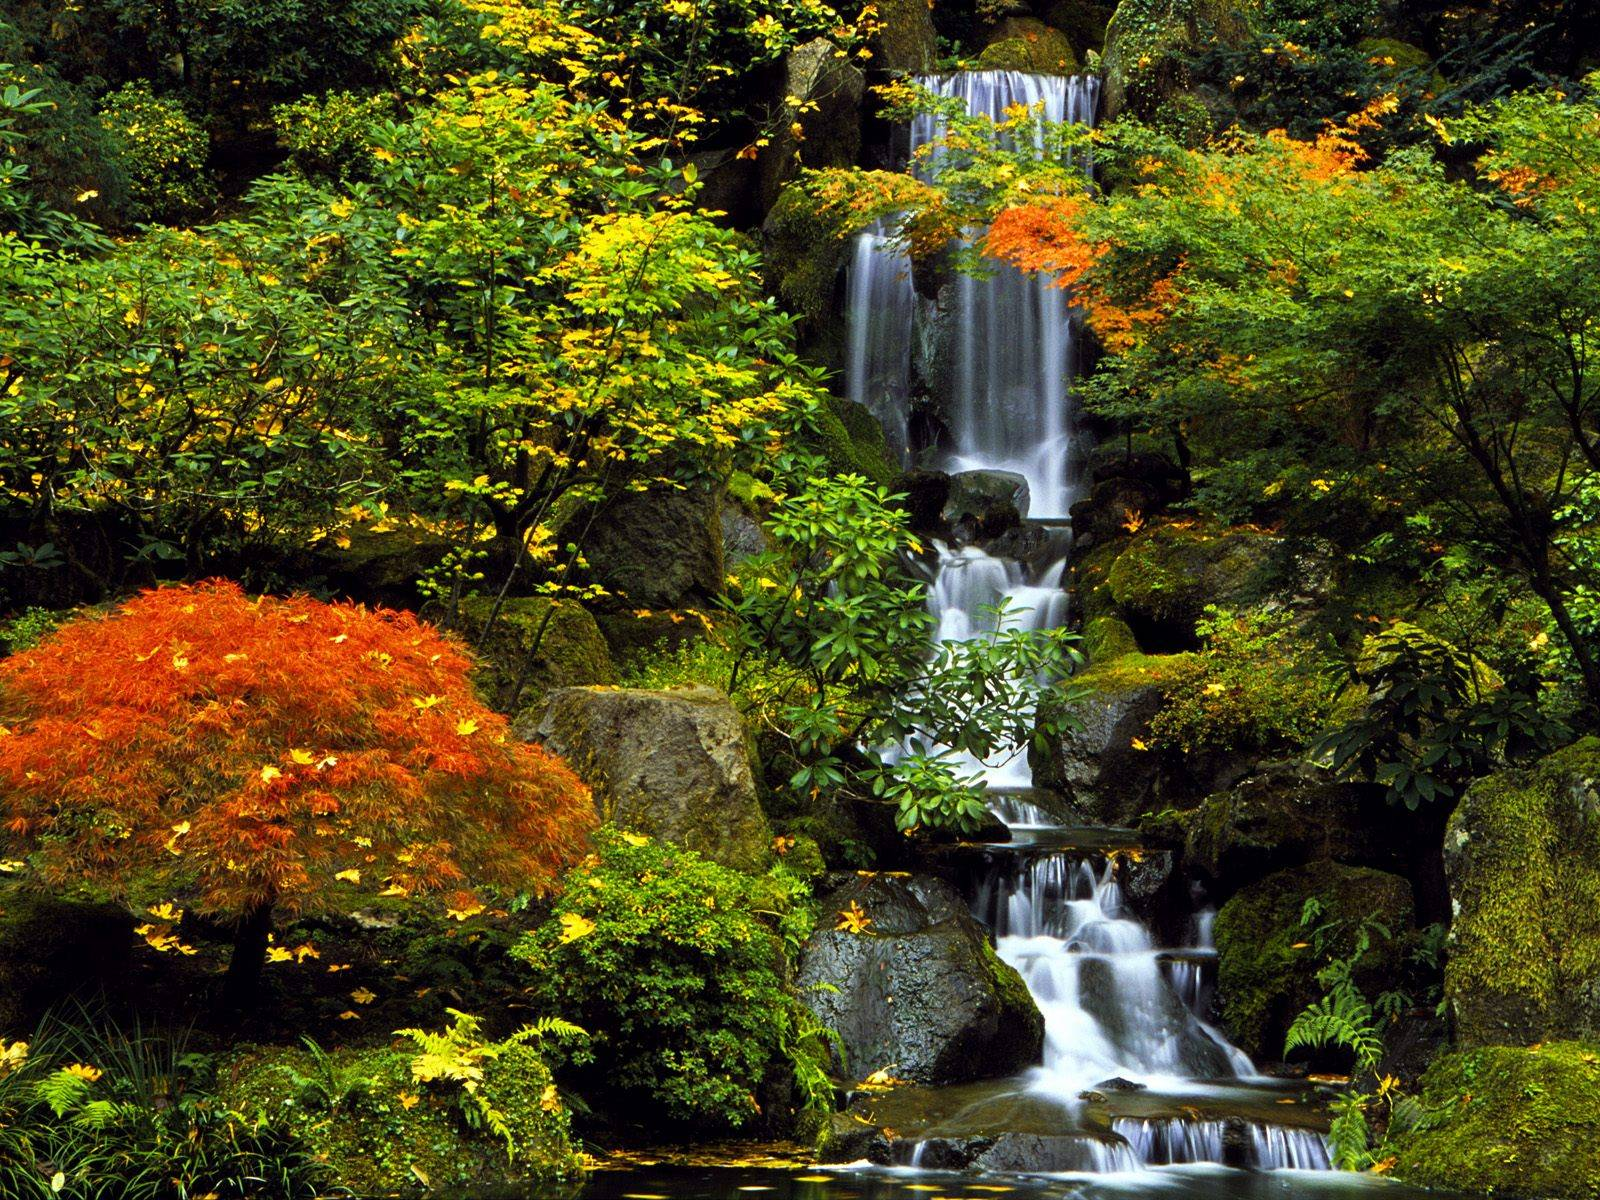 Portland images Japanese Garden HD wallpaper and background photos 1600x1200